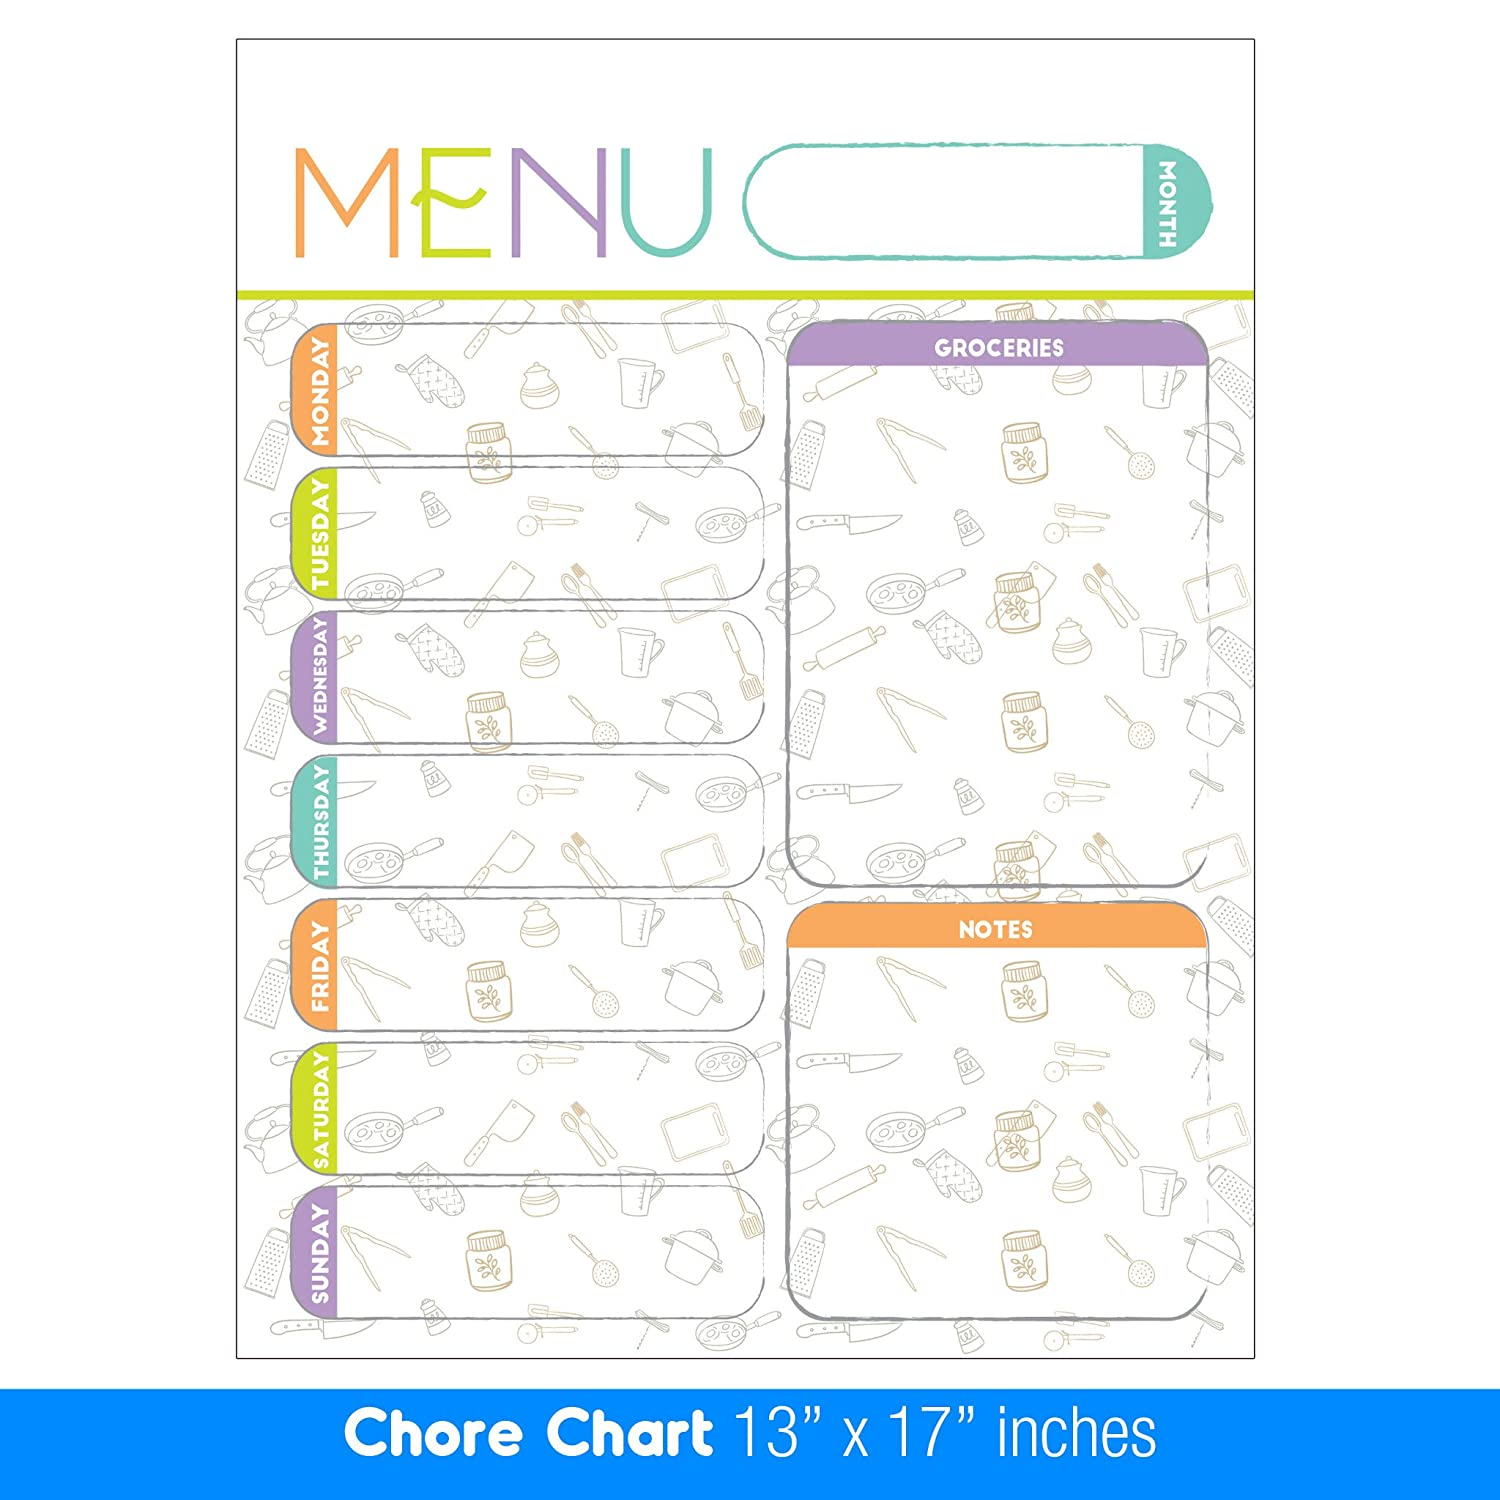 Best EXTRA LARGE 13 x 17 -inch Dry Erase or Wet Erase Laminated Magnetic Dry Erase Menu And Groceries Planner - Perfect for Refrigerators Keep a Weekly Meal Plan & Grocery List Pastel White